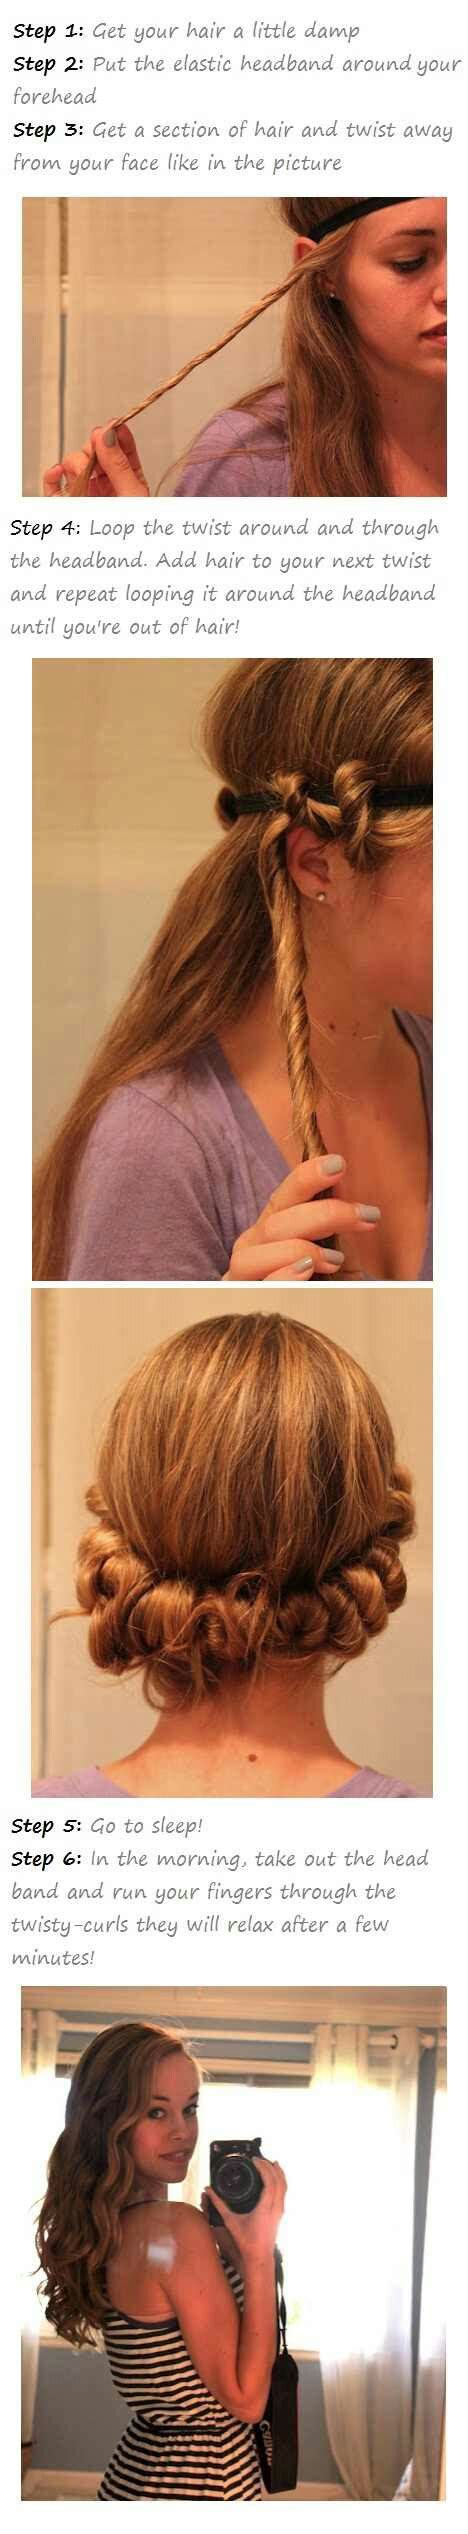 hairstyle ideas without heat diy no heat curls 15 tutorials for curl hair without heat